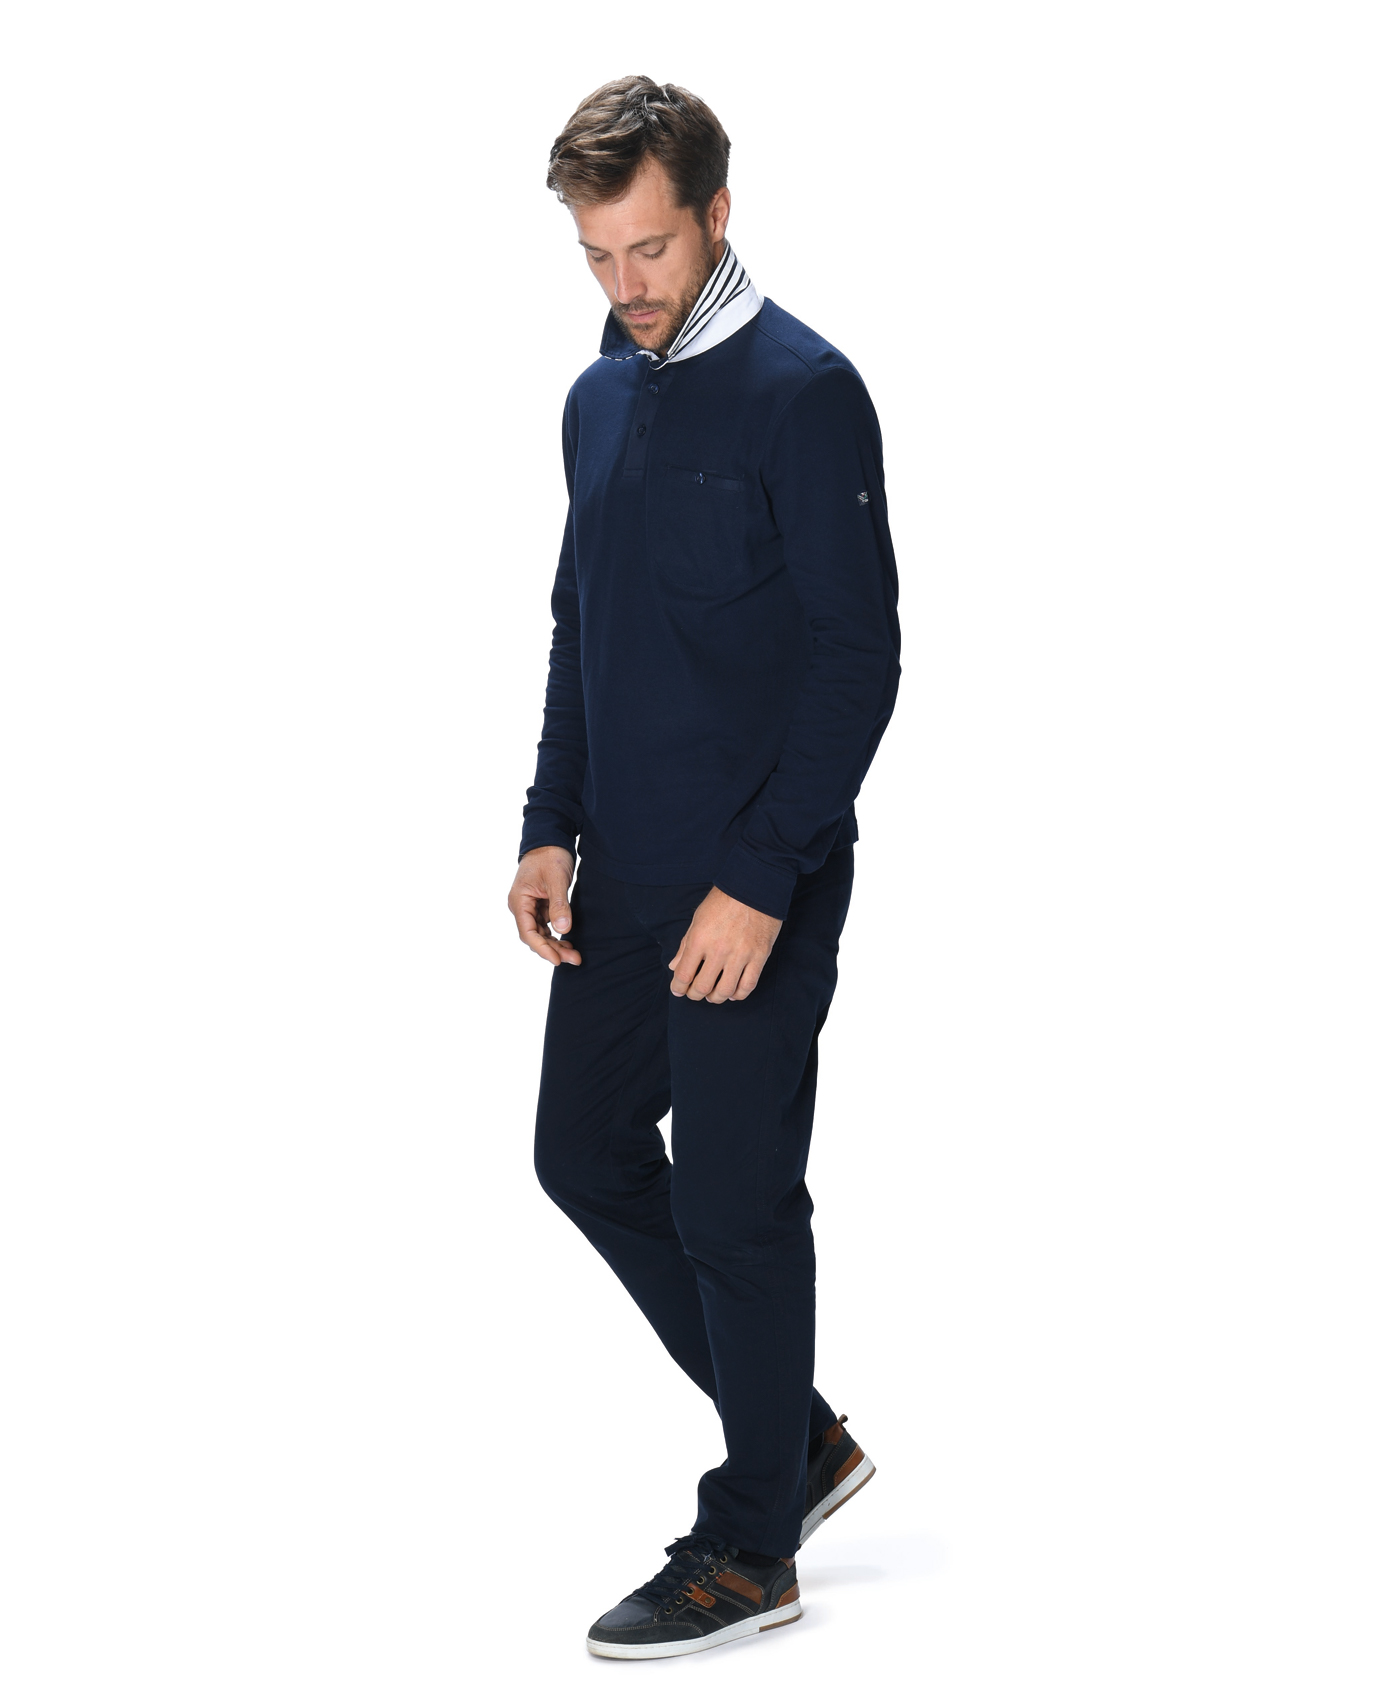 Polo marine homme - Mode marine Homme